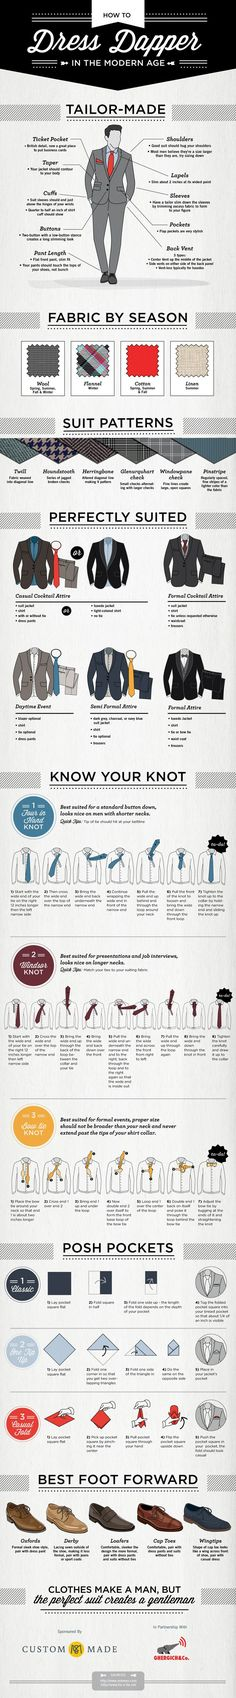 How to Look Dapper in the Modern Age - everything a classy guy should know